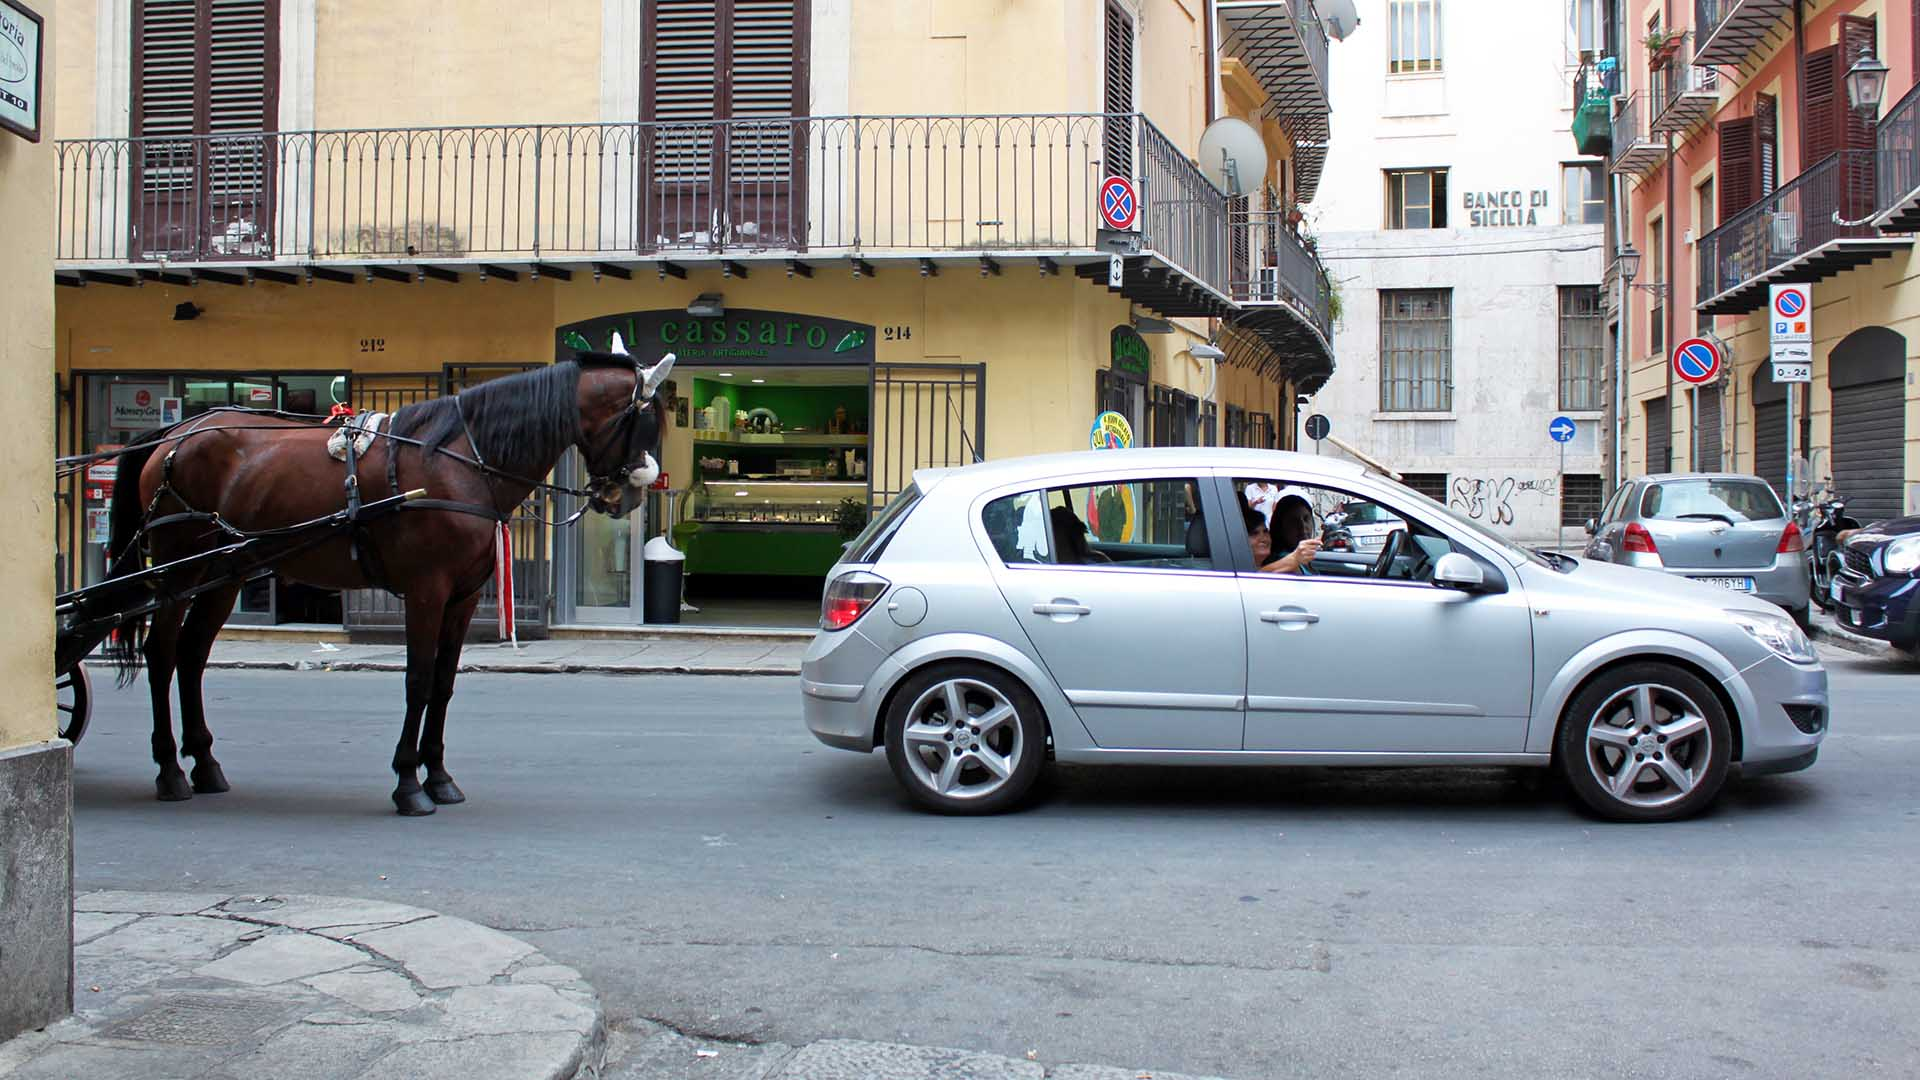 Horse and Opel Astra in Italy